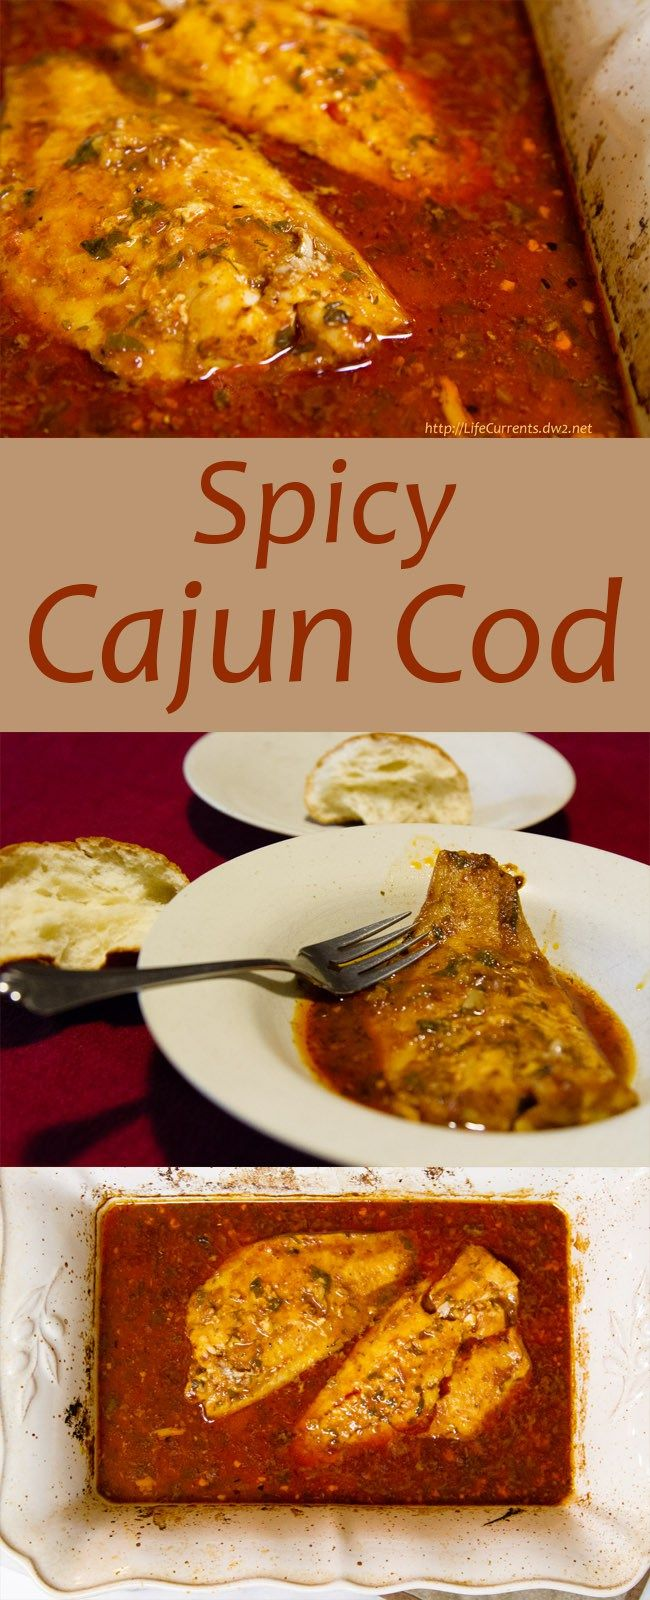 Spicy Cajun Cod: Savory, spicy, fish that you can't quit eating...use crusty, bread to sop up every last drop of the delicious sauce! This fish could easily be a weeknight meal as well. #seafood #fish #cajun